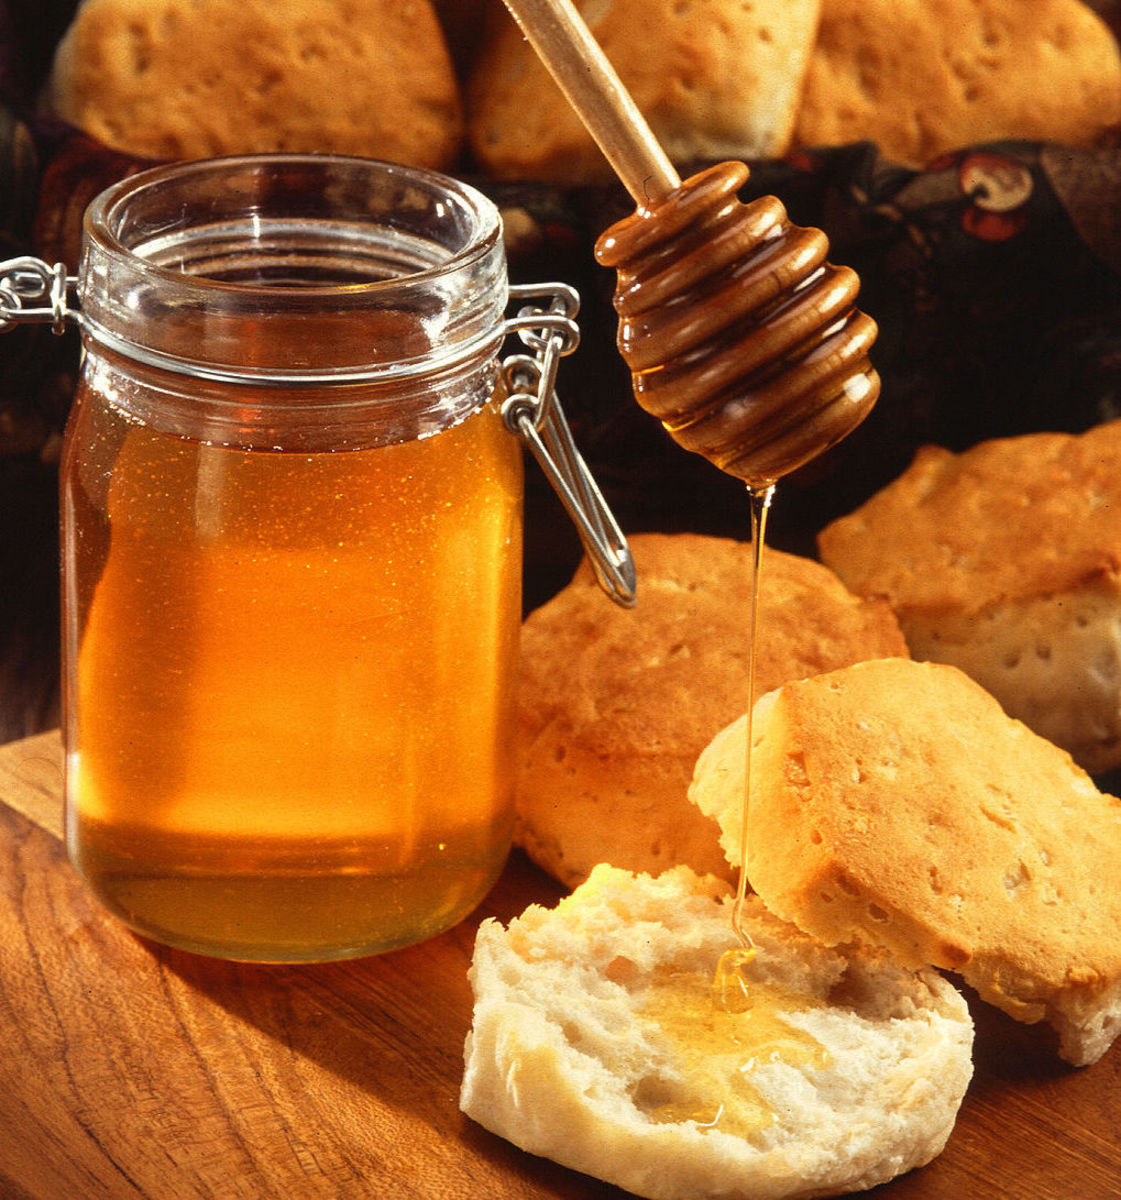 A jar of honey with a honey dipper and an American biscuit.